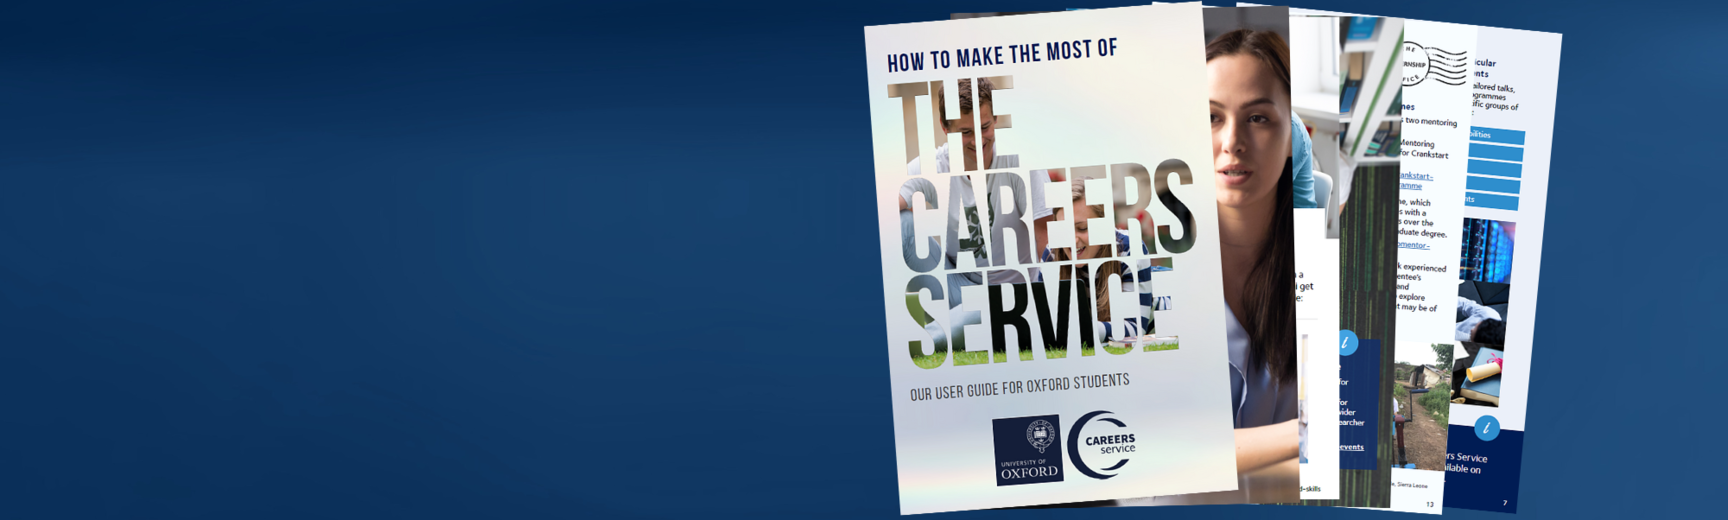 make the most careers service background